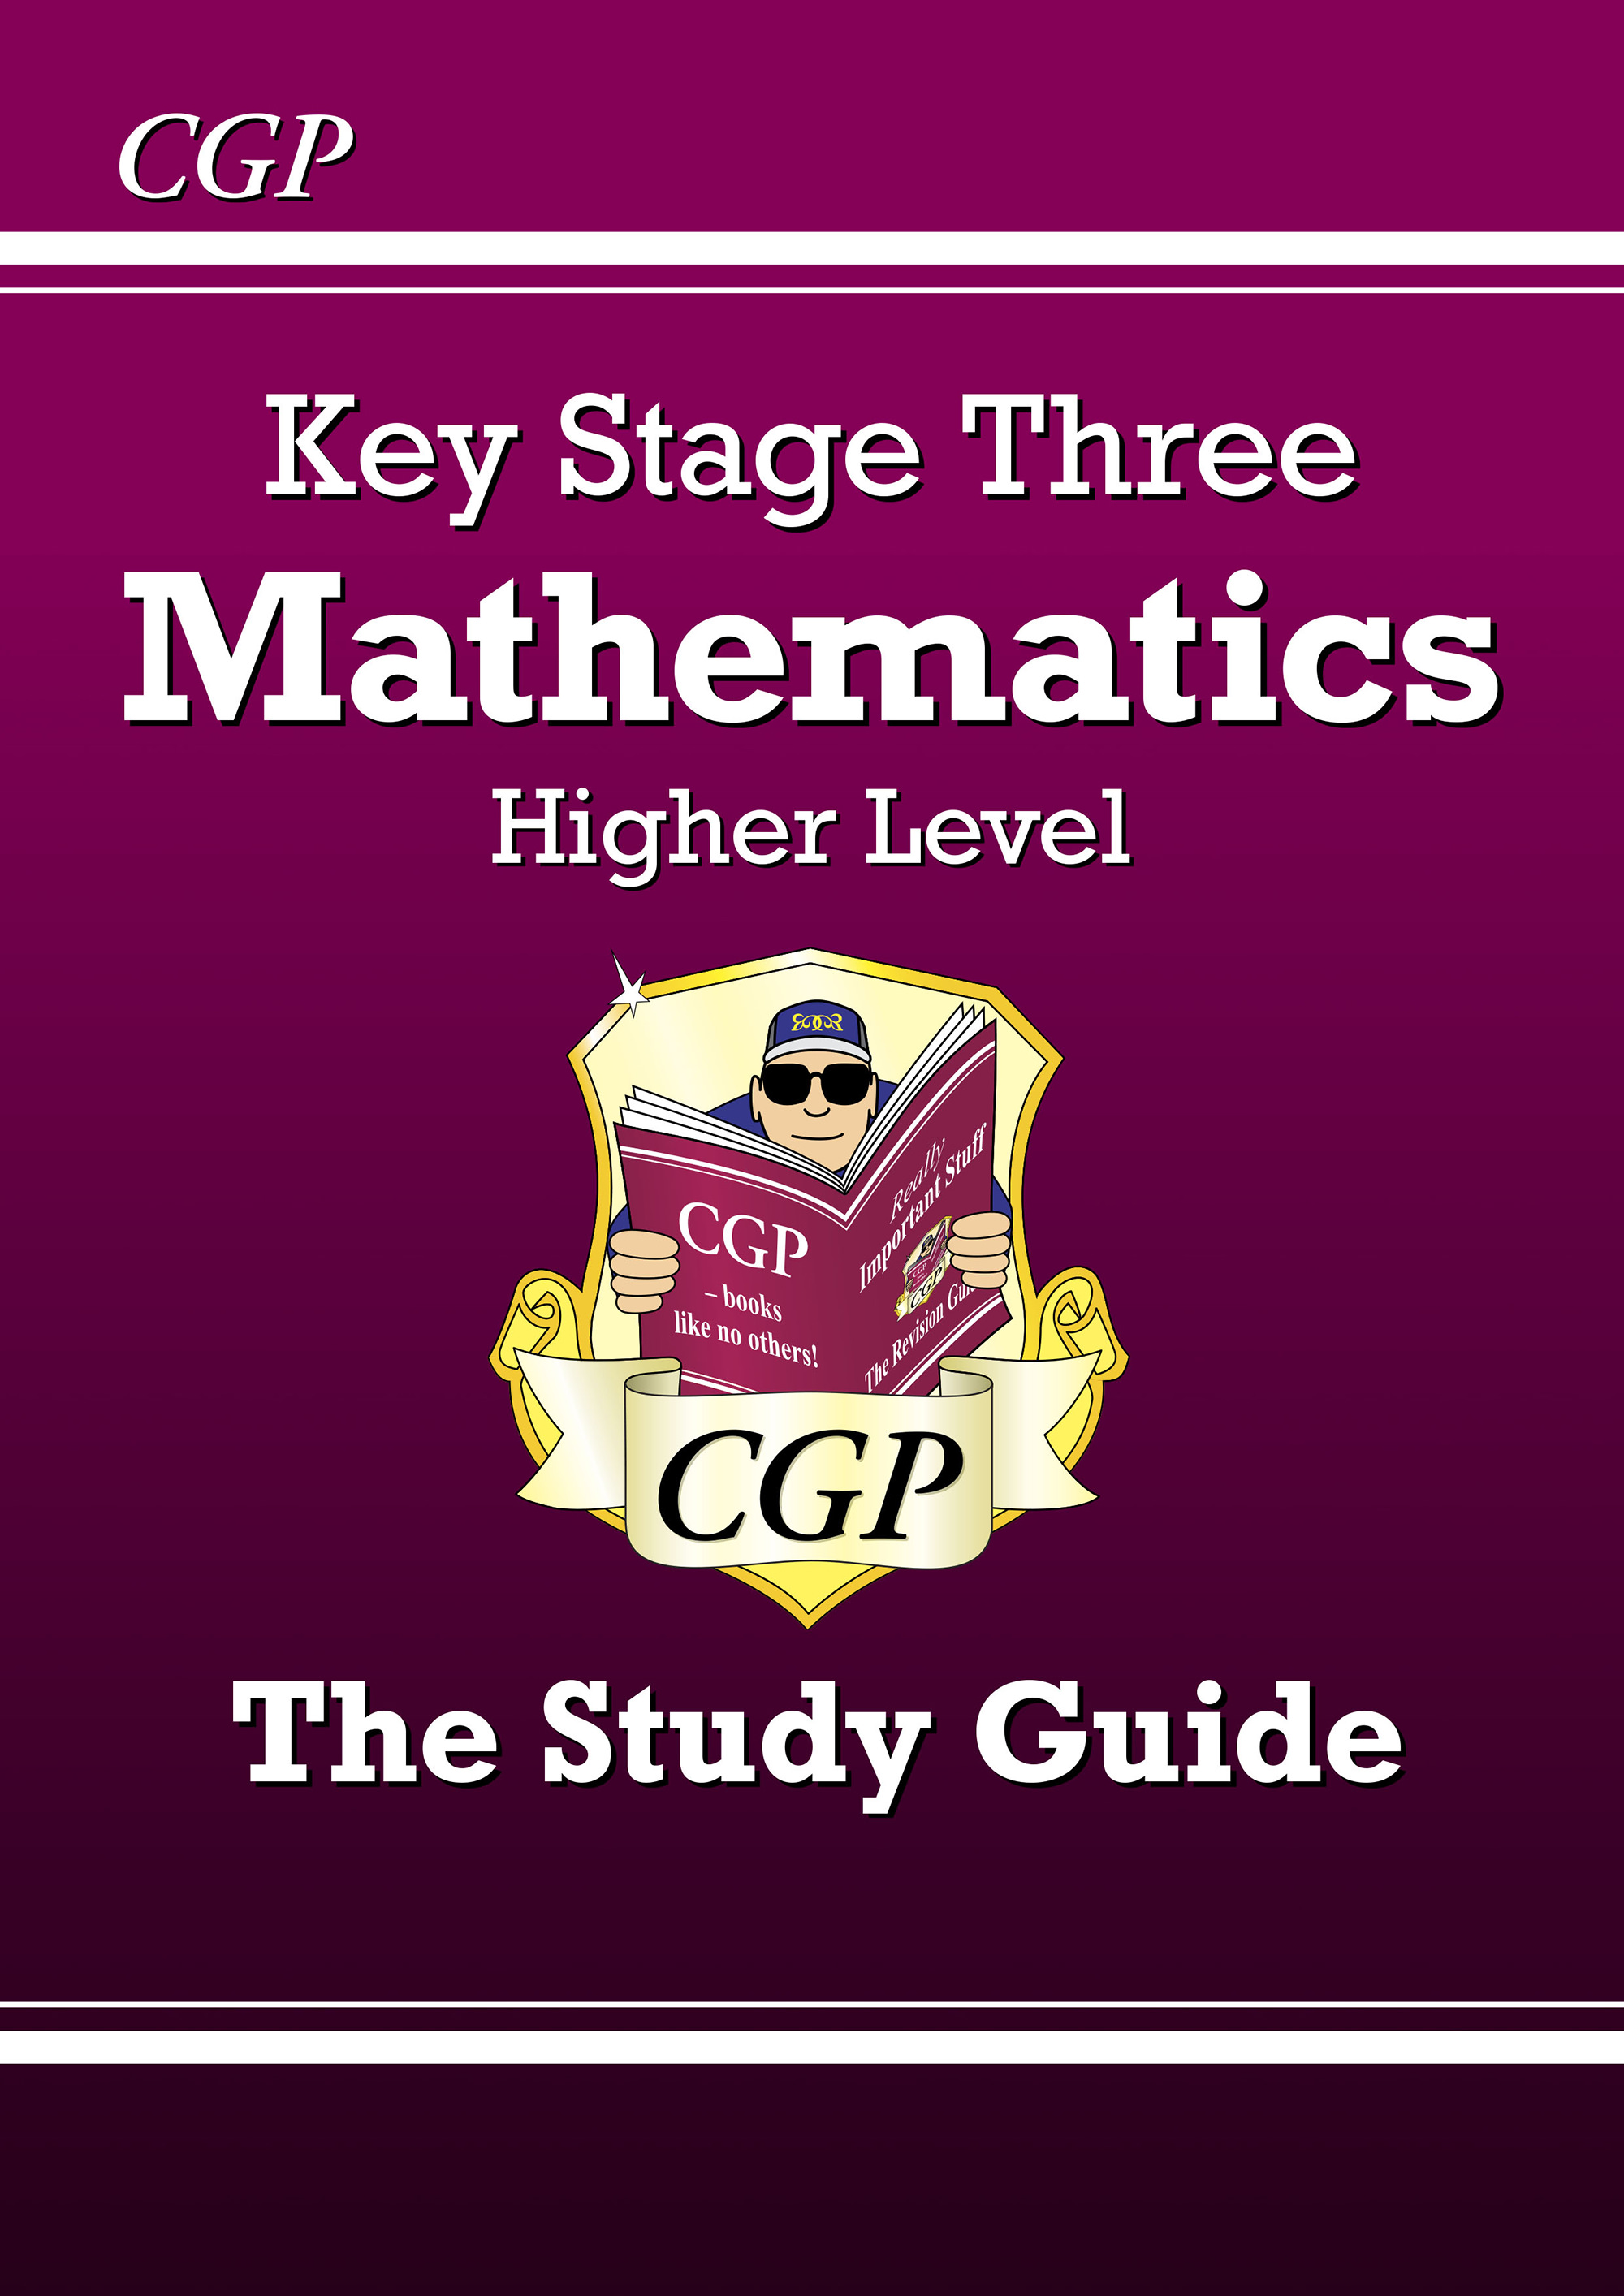 MHR32DK - KS3 Maths Study Guide - Higher